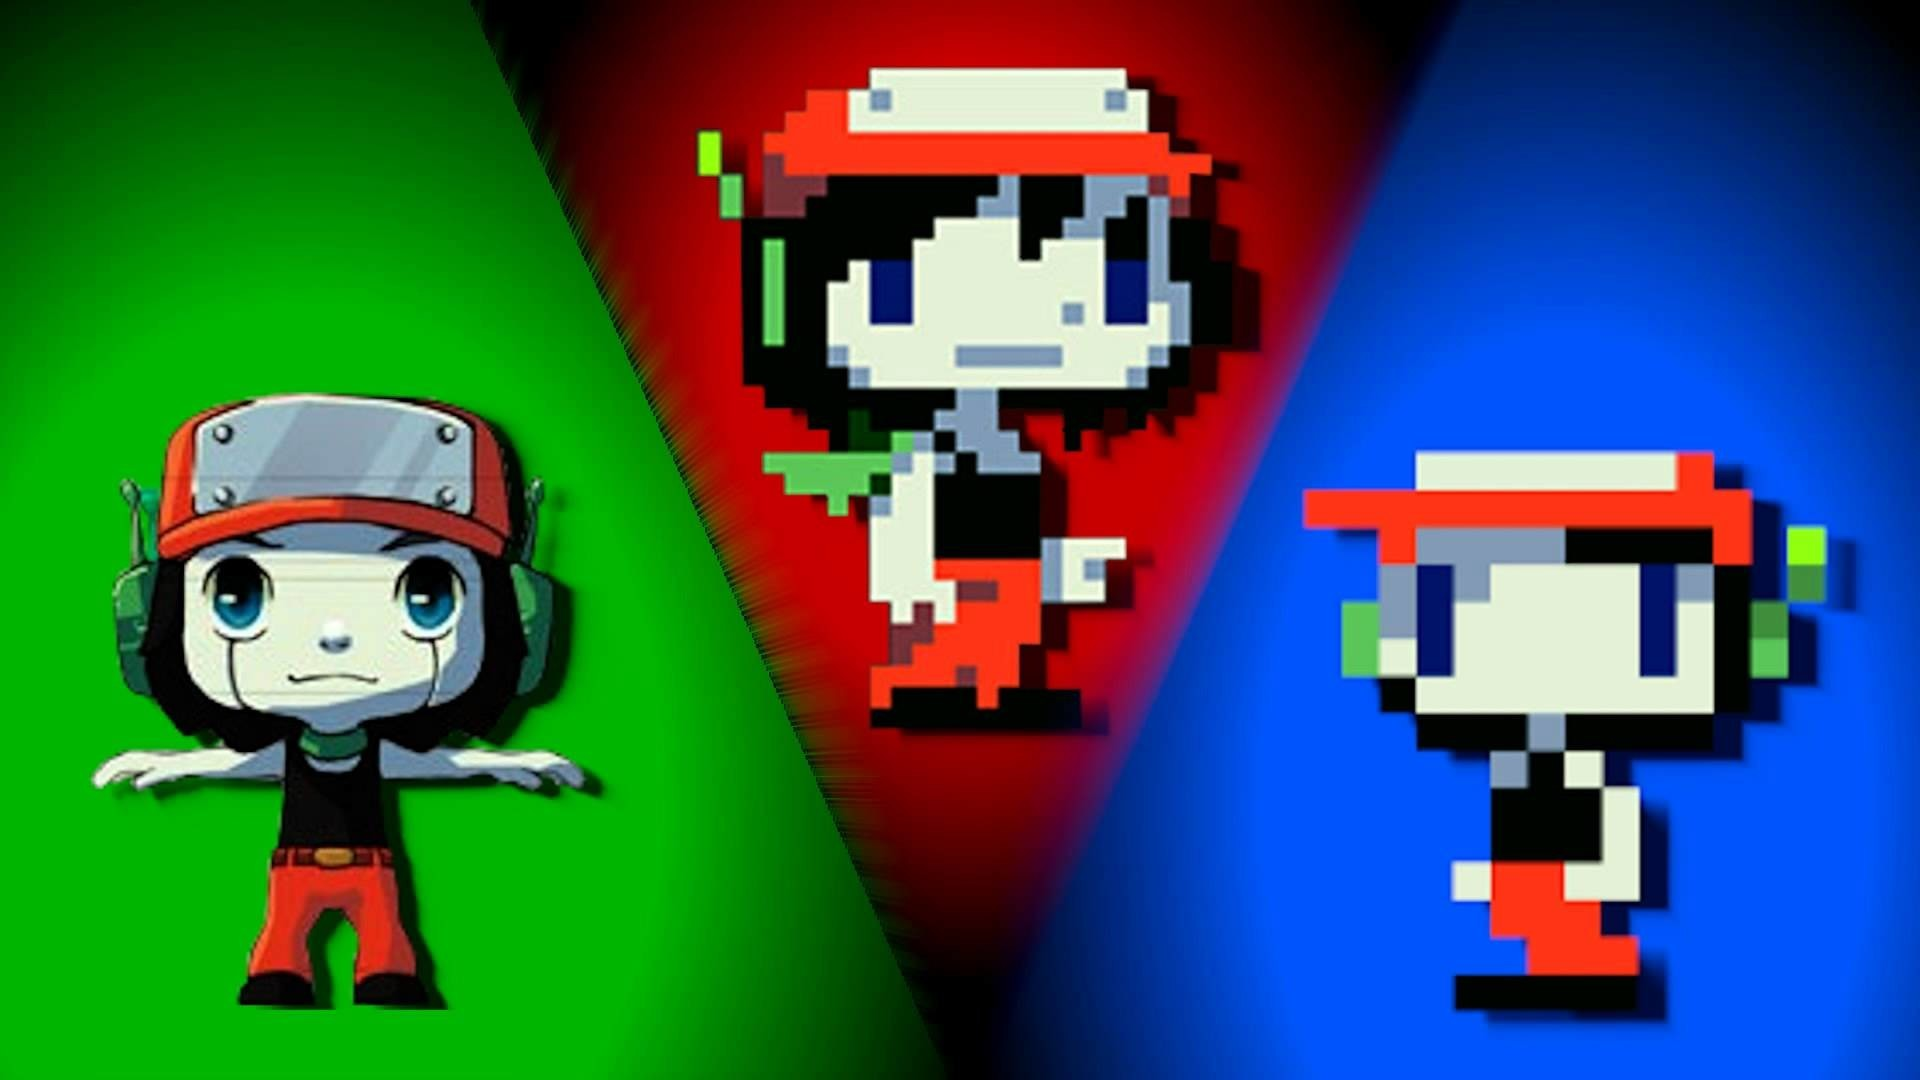 1920x1080 cave story wallpaper 67+ - page 3 of 3 - xshyfc